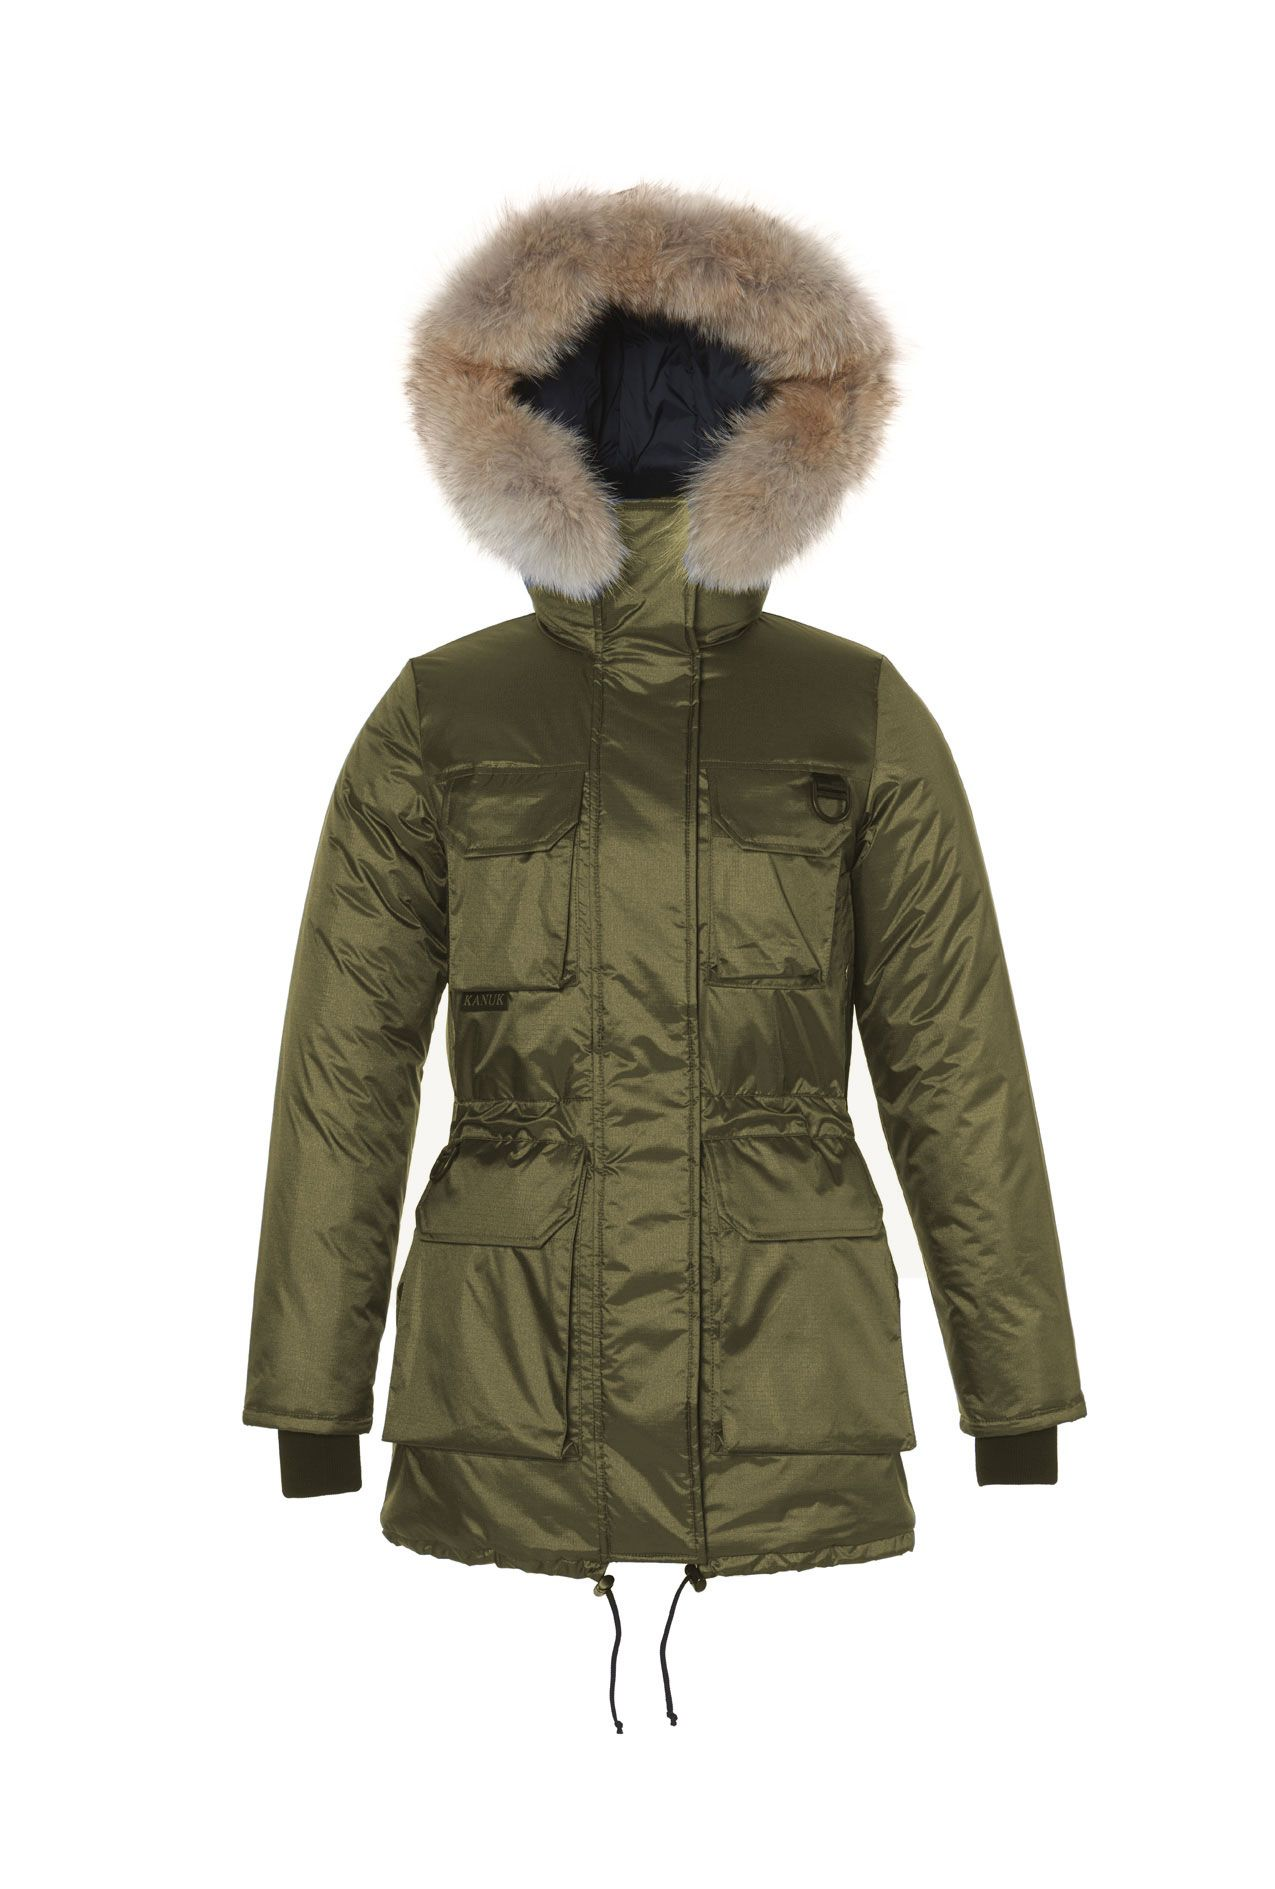 The Kanuk Arctic jacket, renowned for its warmth, light weight and comfort. Double